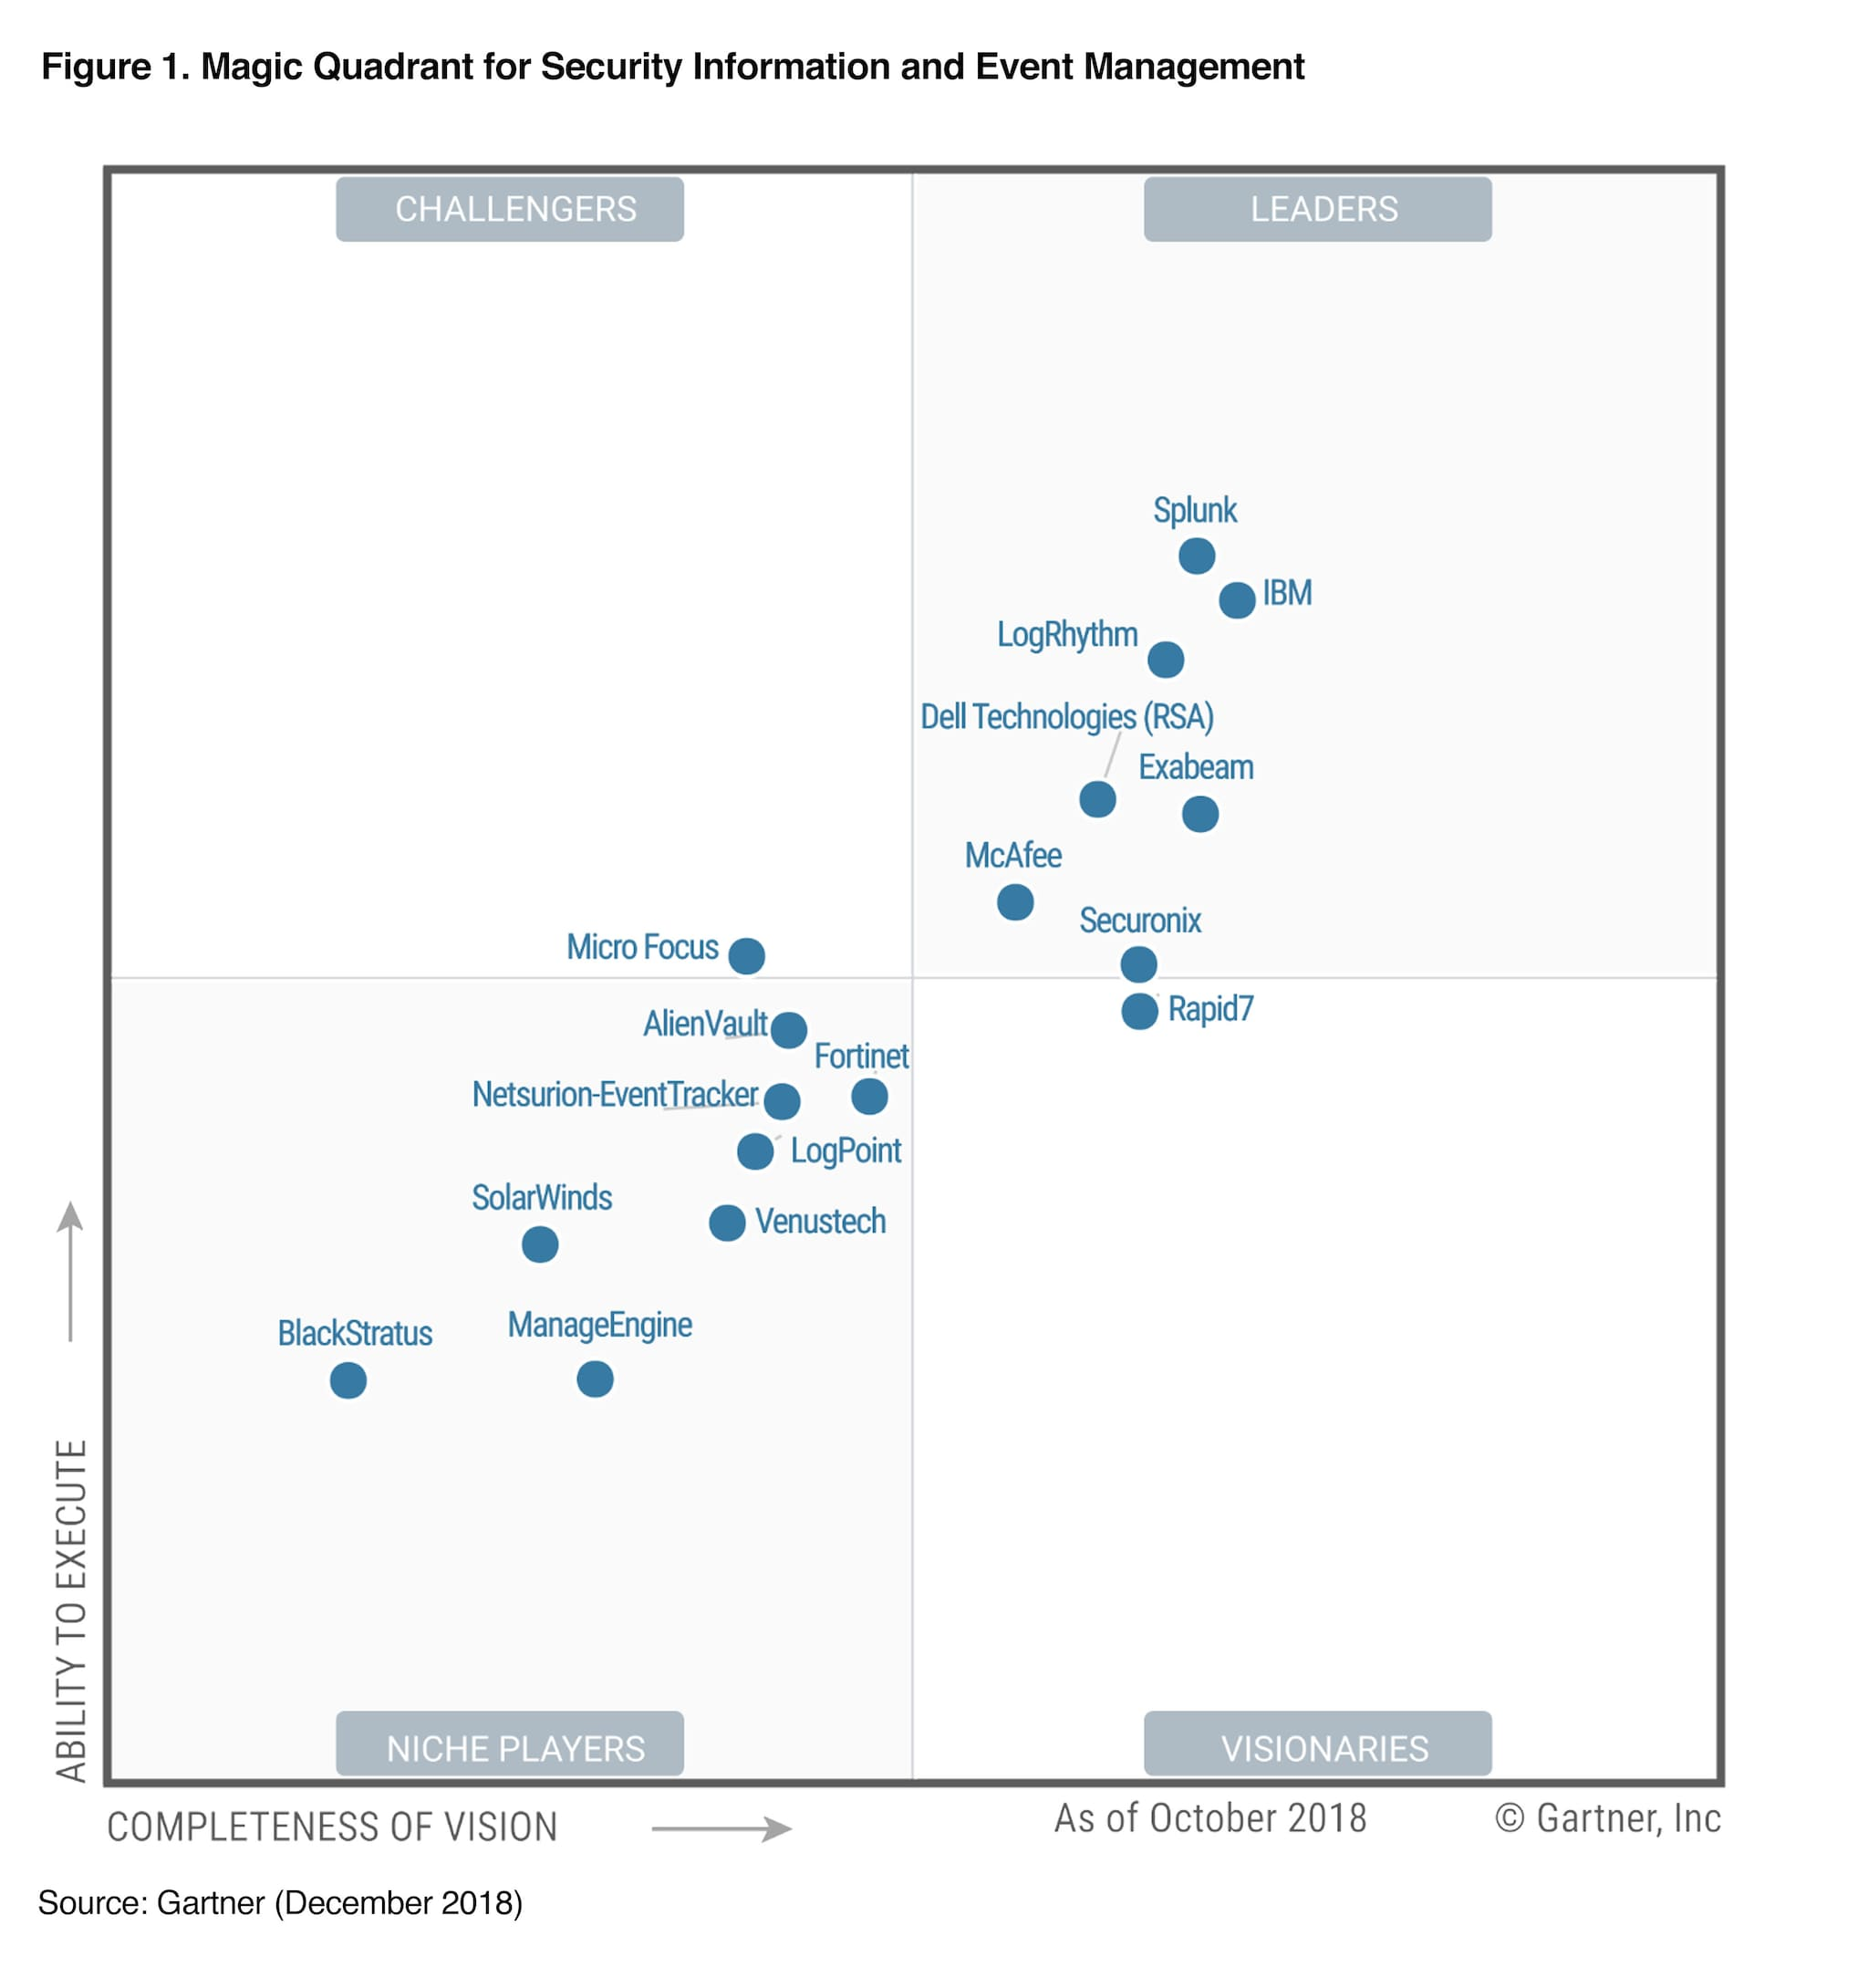 gartner siem magic quadrant splunk